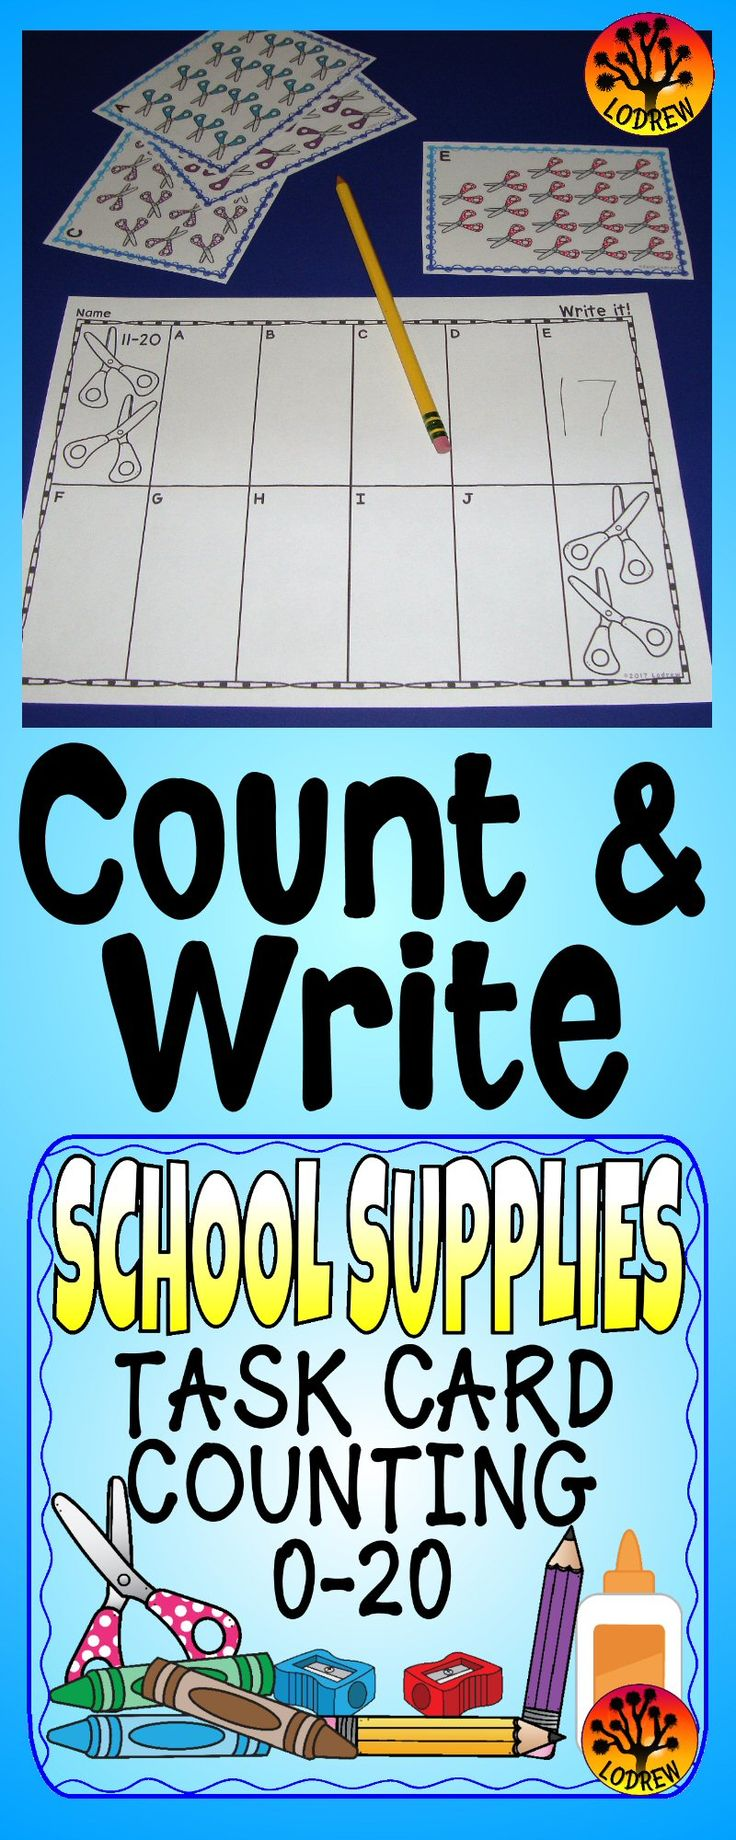 How To Eat Fried Worms 130 Pages Of School Supply Counting Task Cards And  No Prep